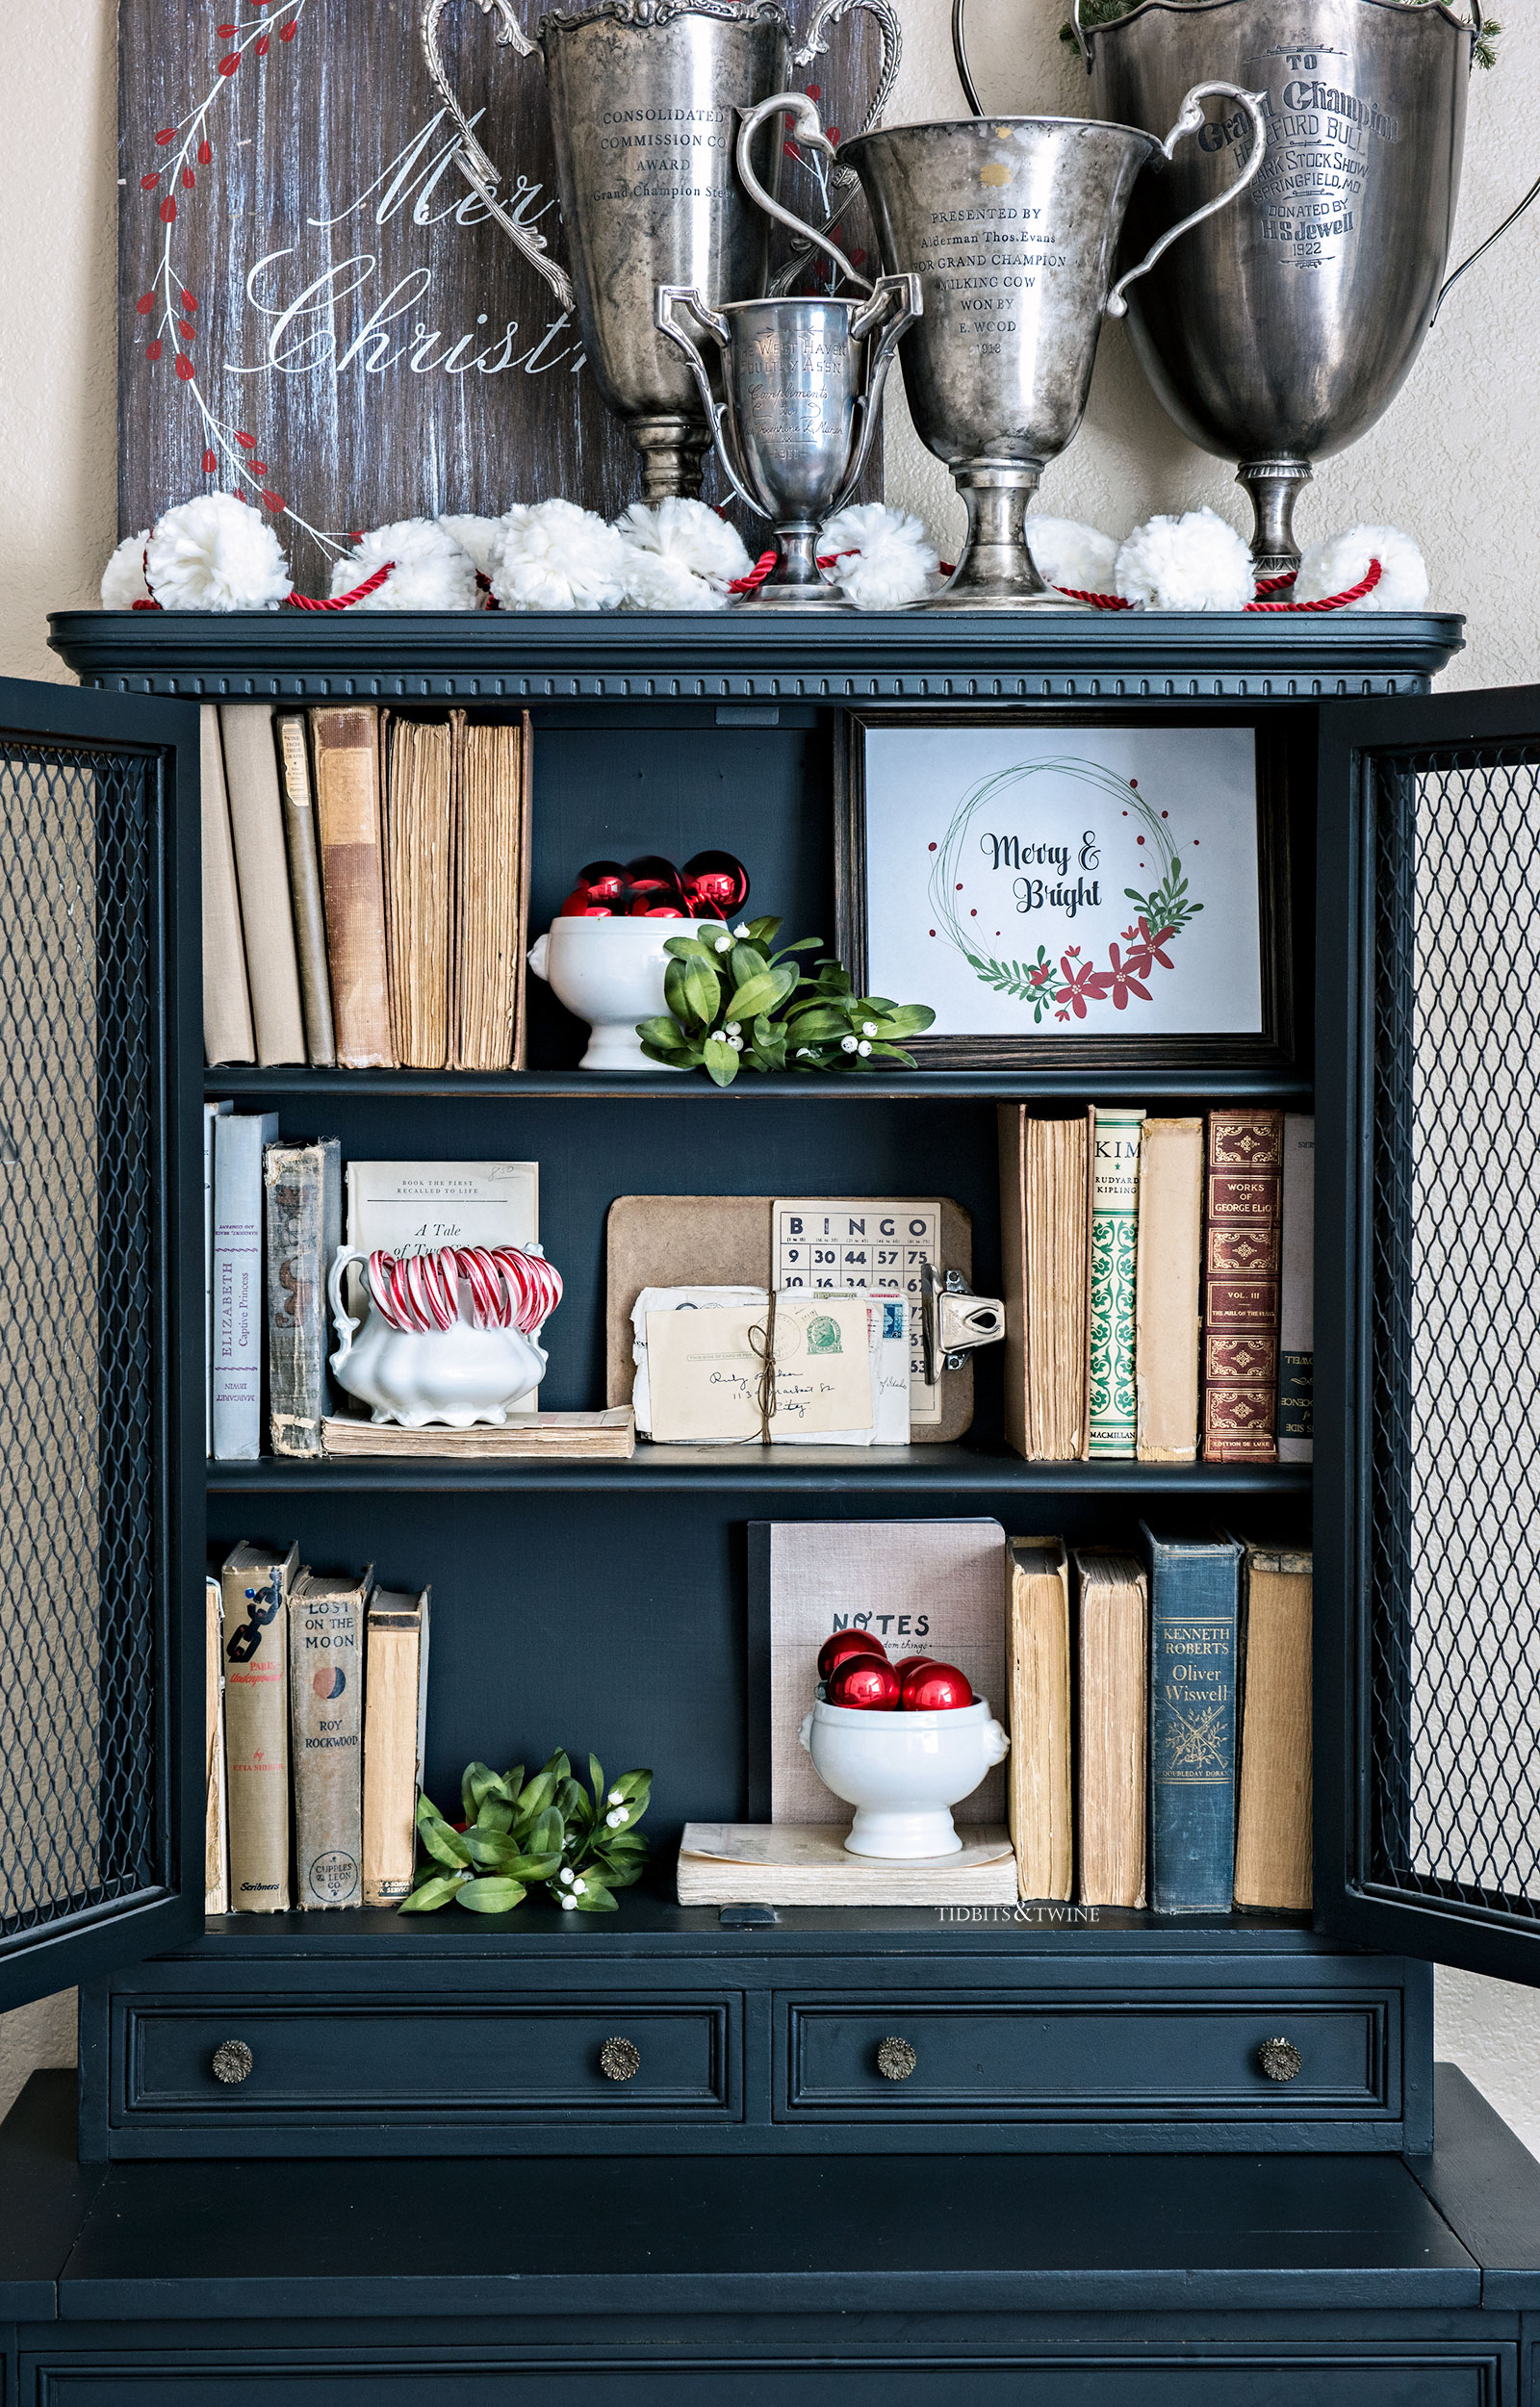 black cabinet shelves decorated for Christmas